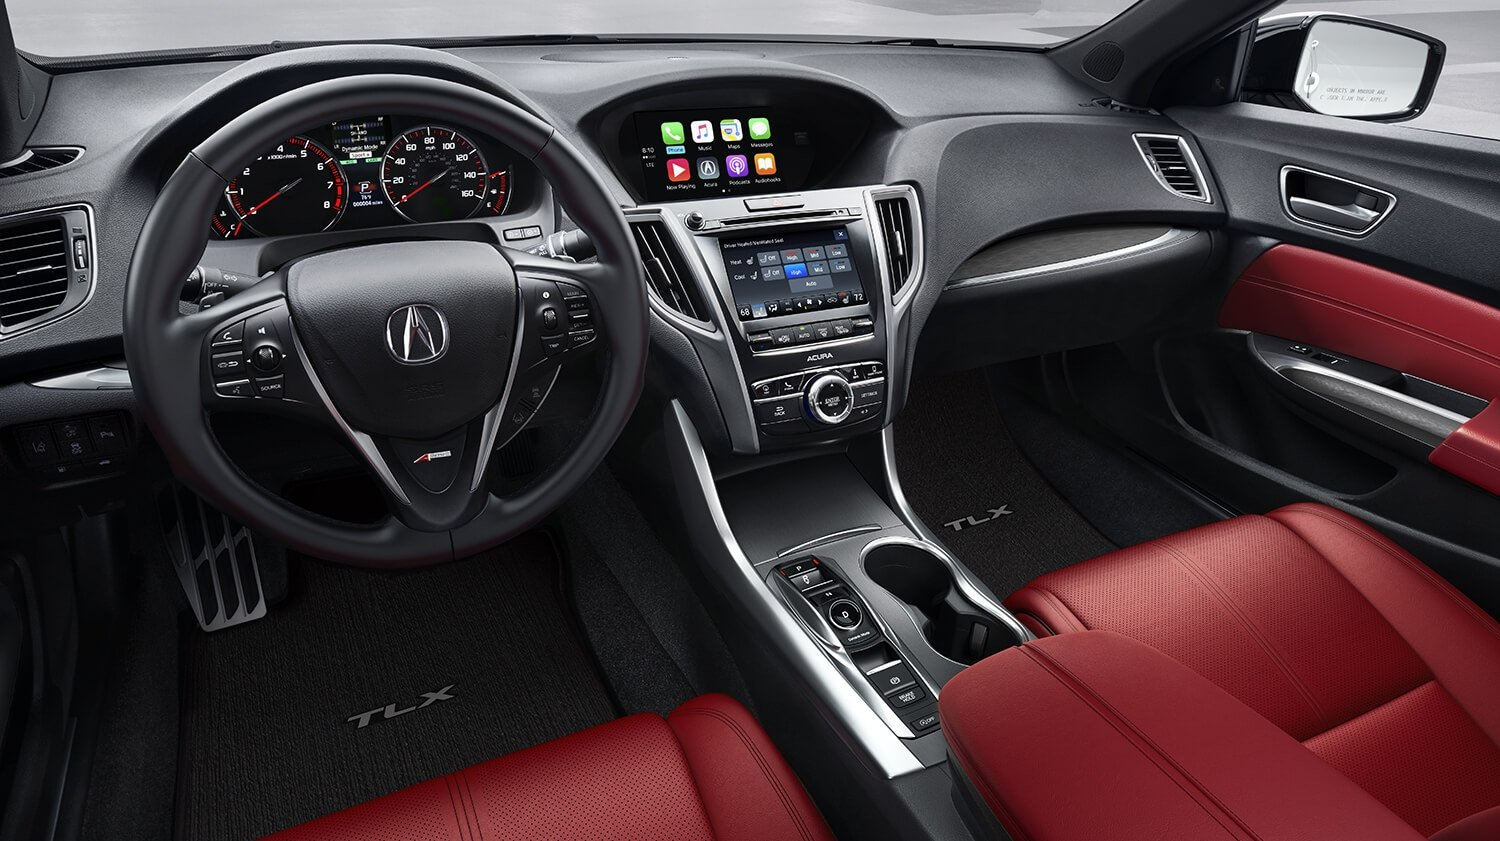 2018 Acura TLX Interior A-SPEC Package